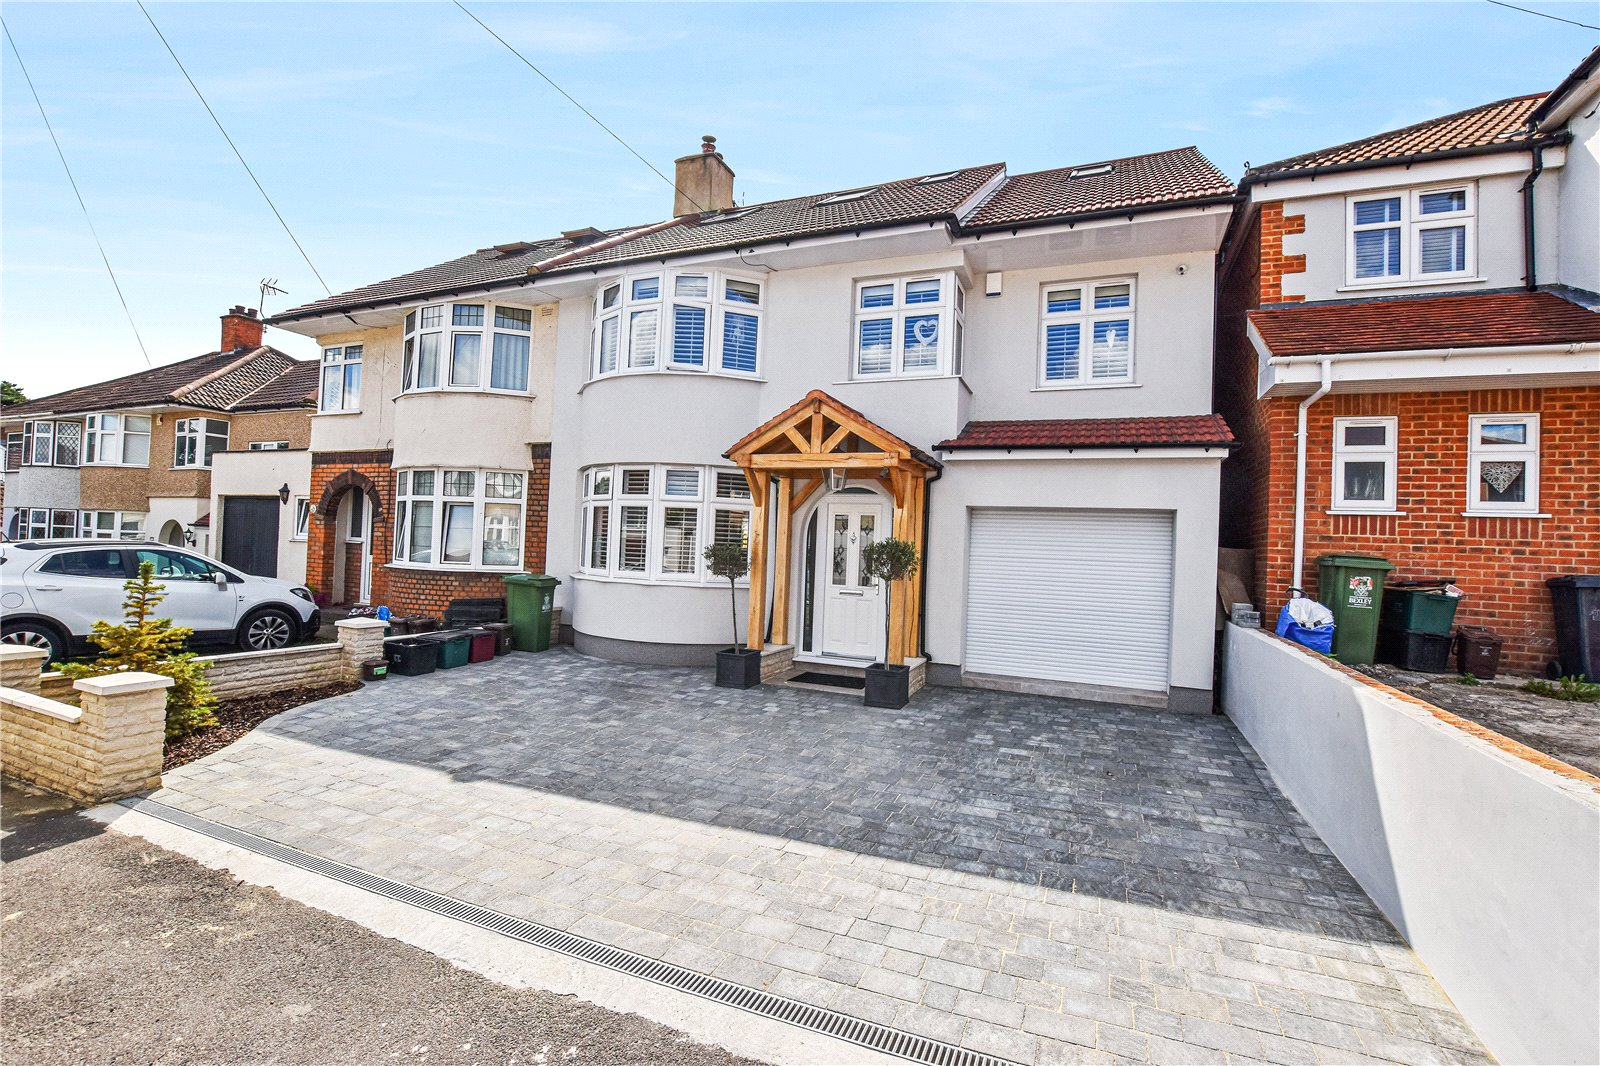 Martens Close, Bexeyheath, Kent, DA7